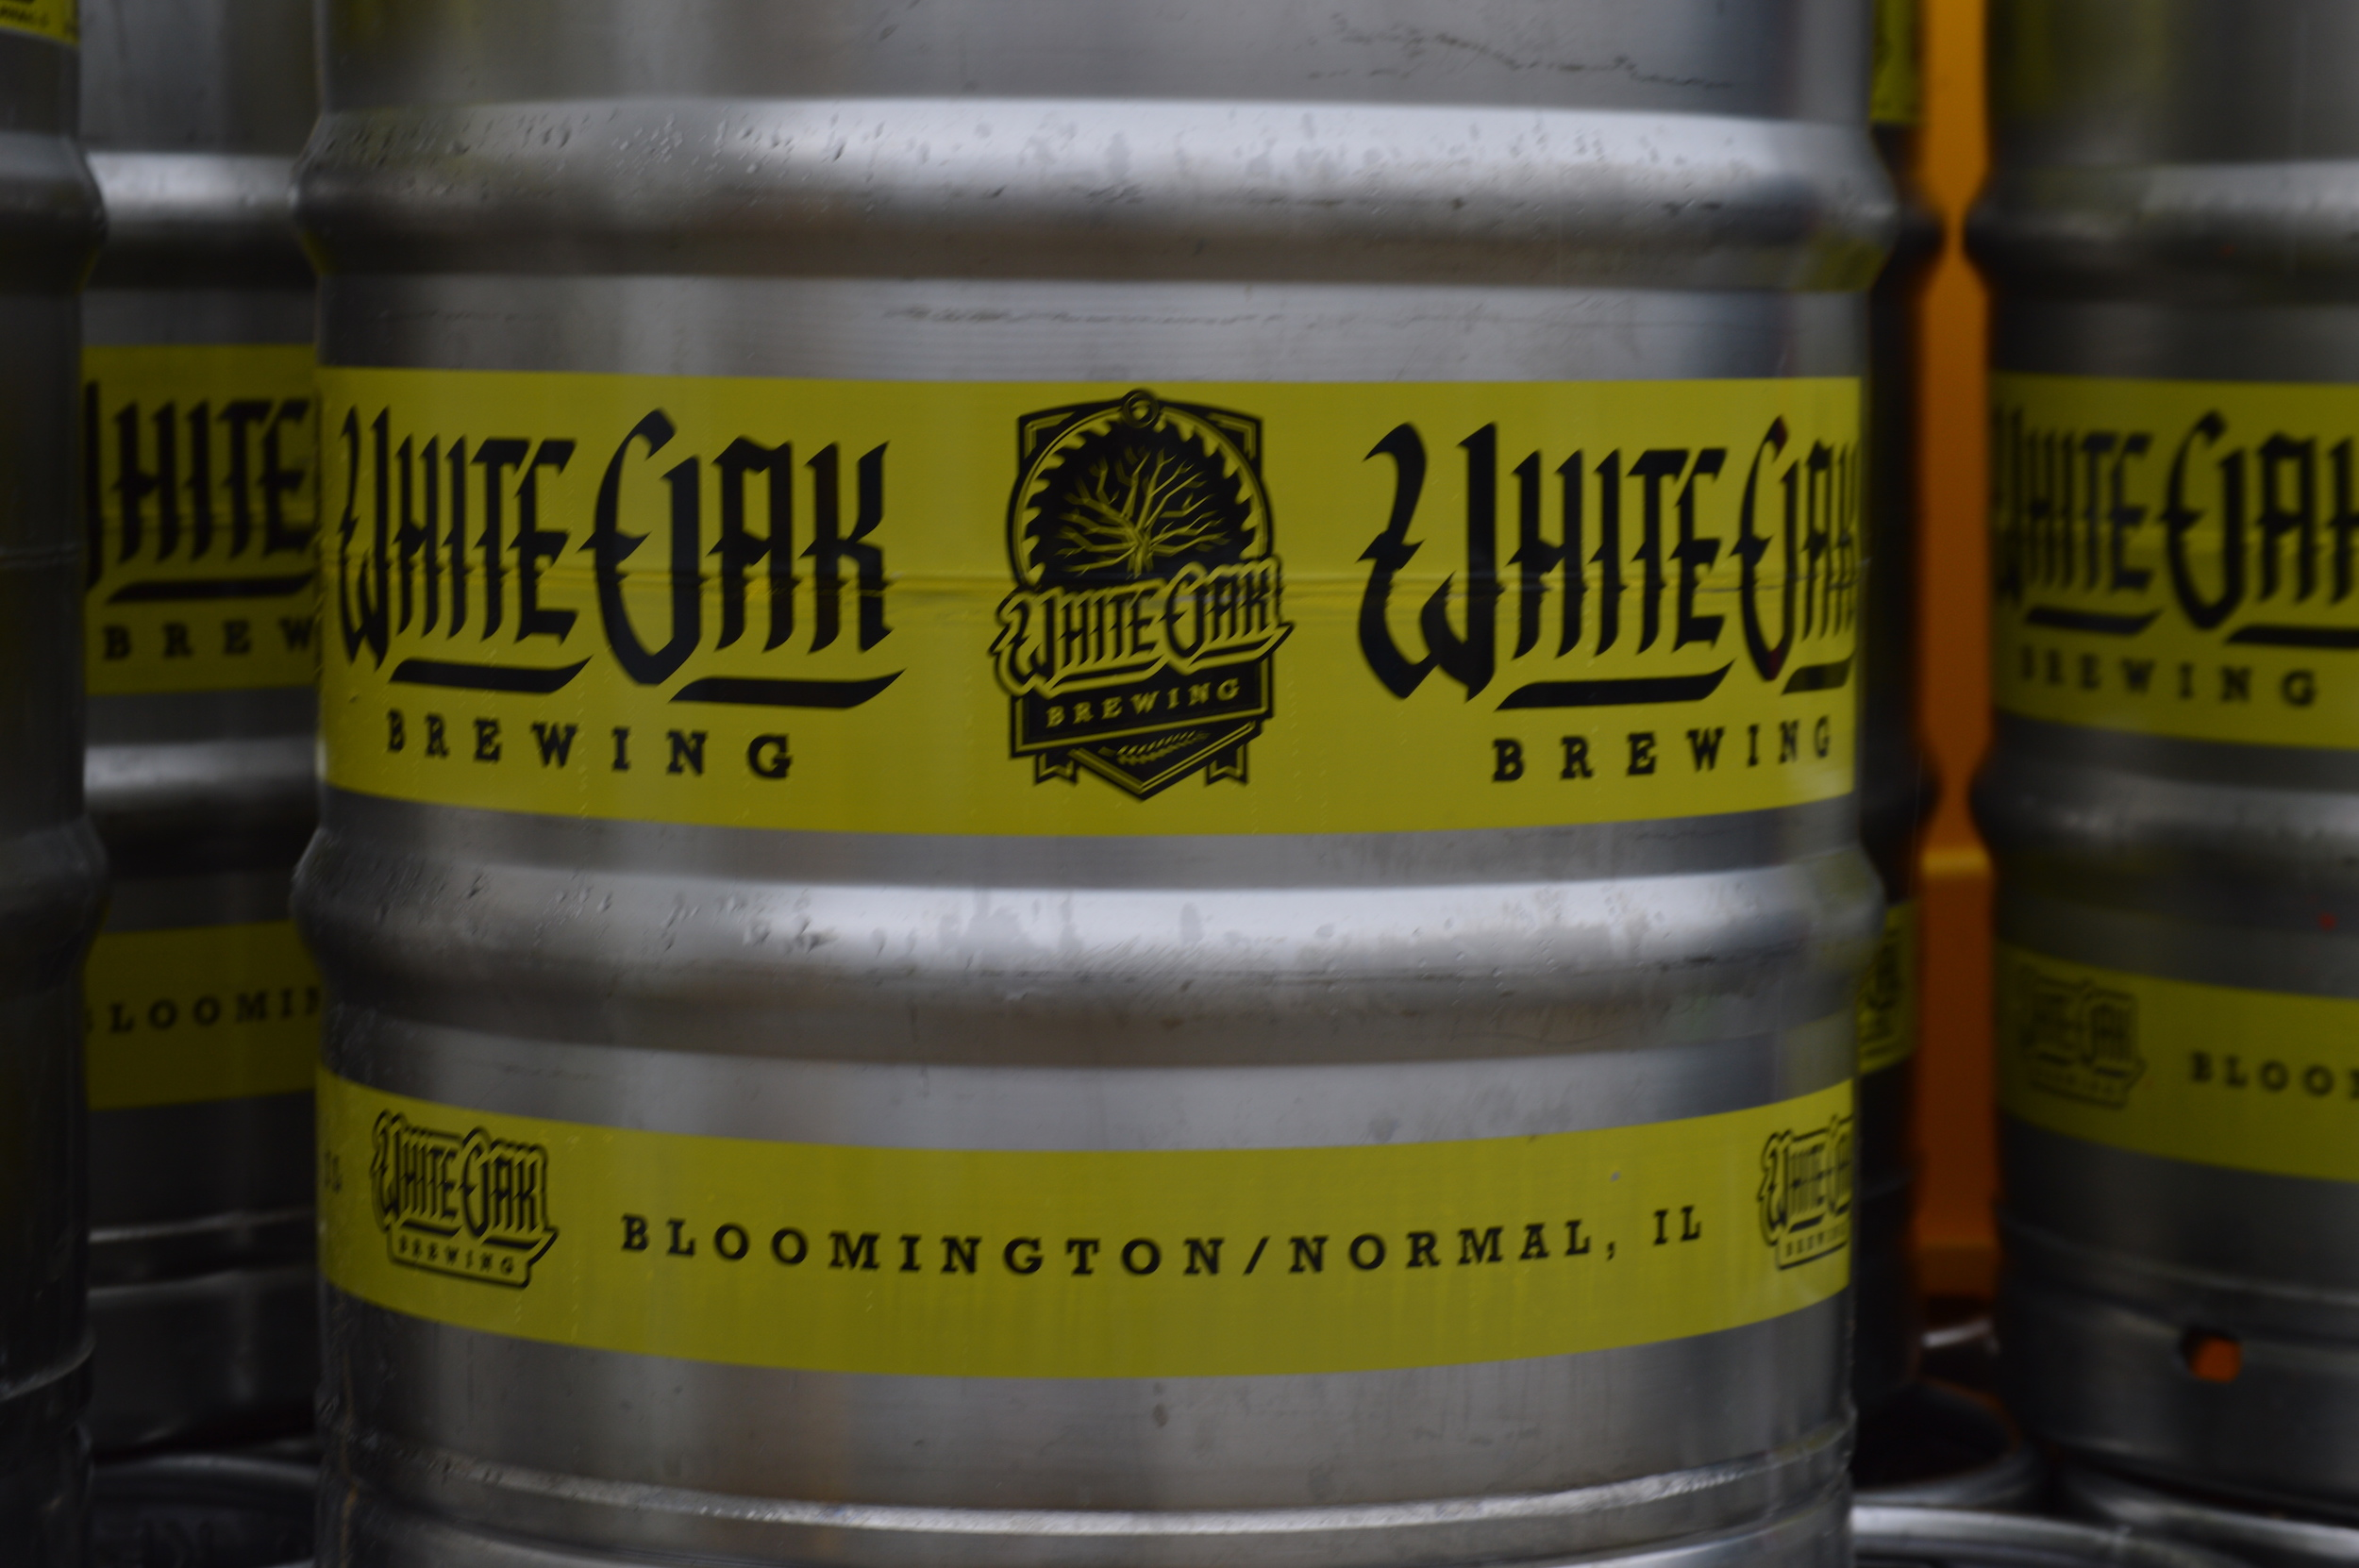 White Oak Brewing produces all of its beer in Normal, Illinois. They produced around 500 barrels of beer last year. (Image Credit: Matt Johnson)